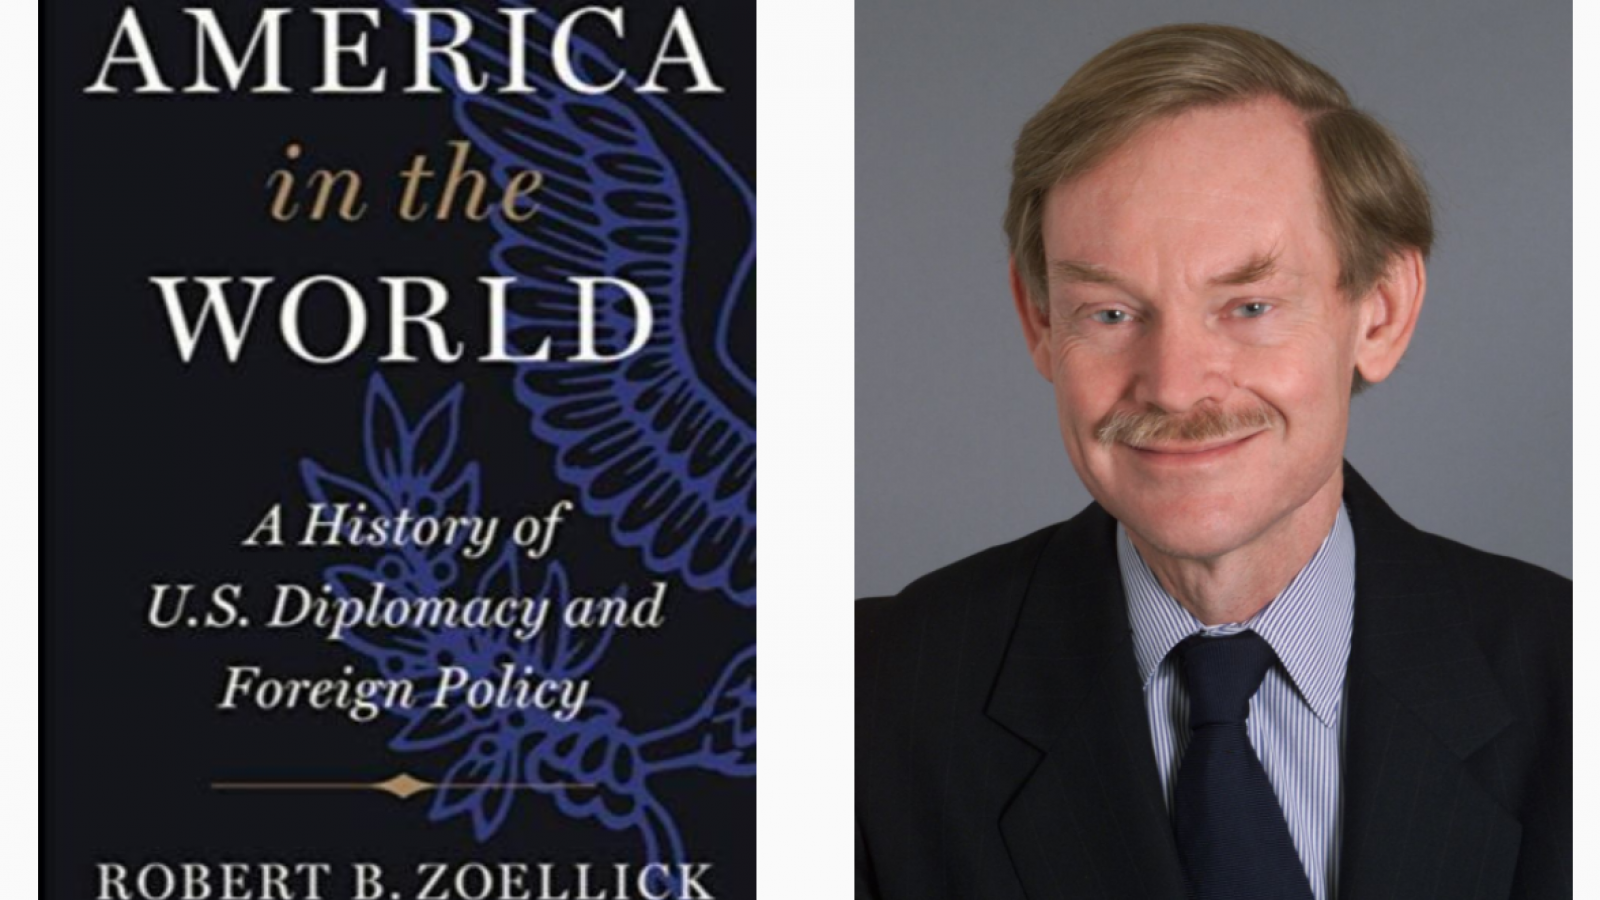 America in the World by Robert B. Zoellick